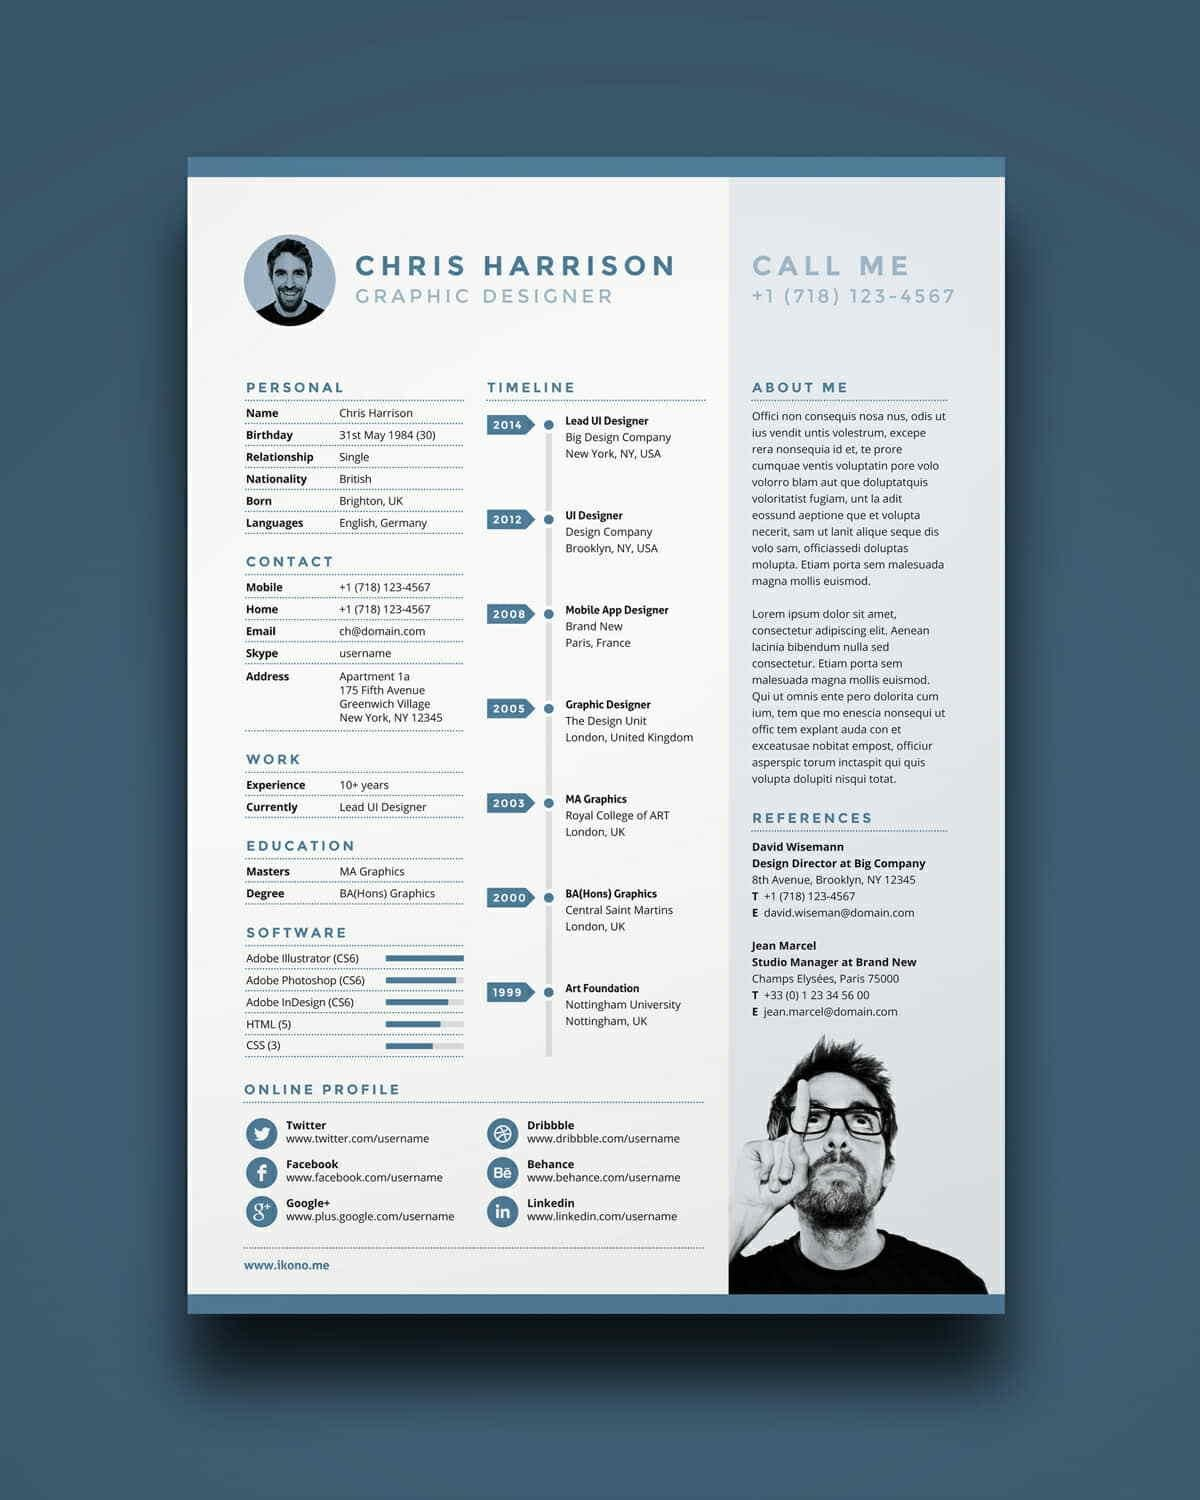 Free resume templates 17 downloadable resume templates to use blue free sample resume with long experience section thecheapjerseys Images